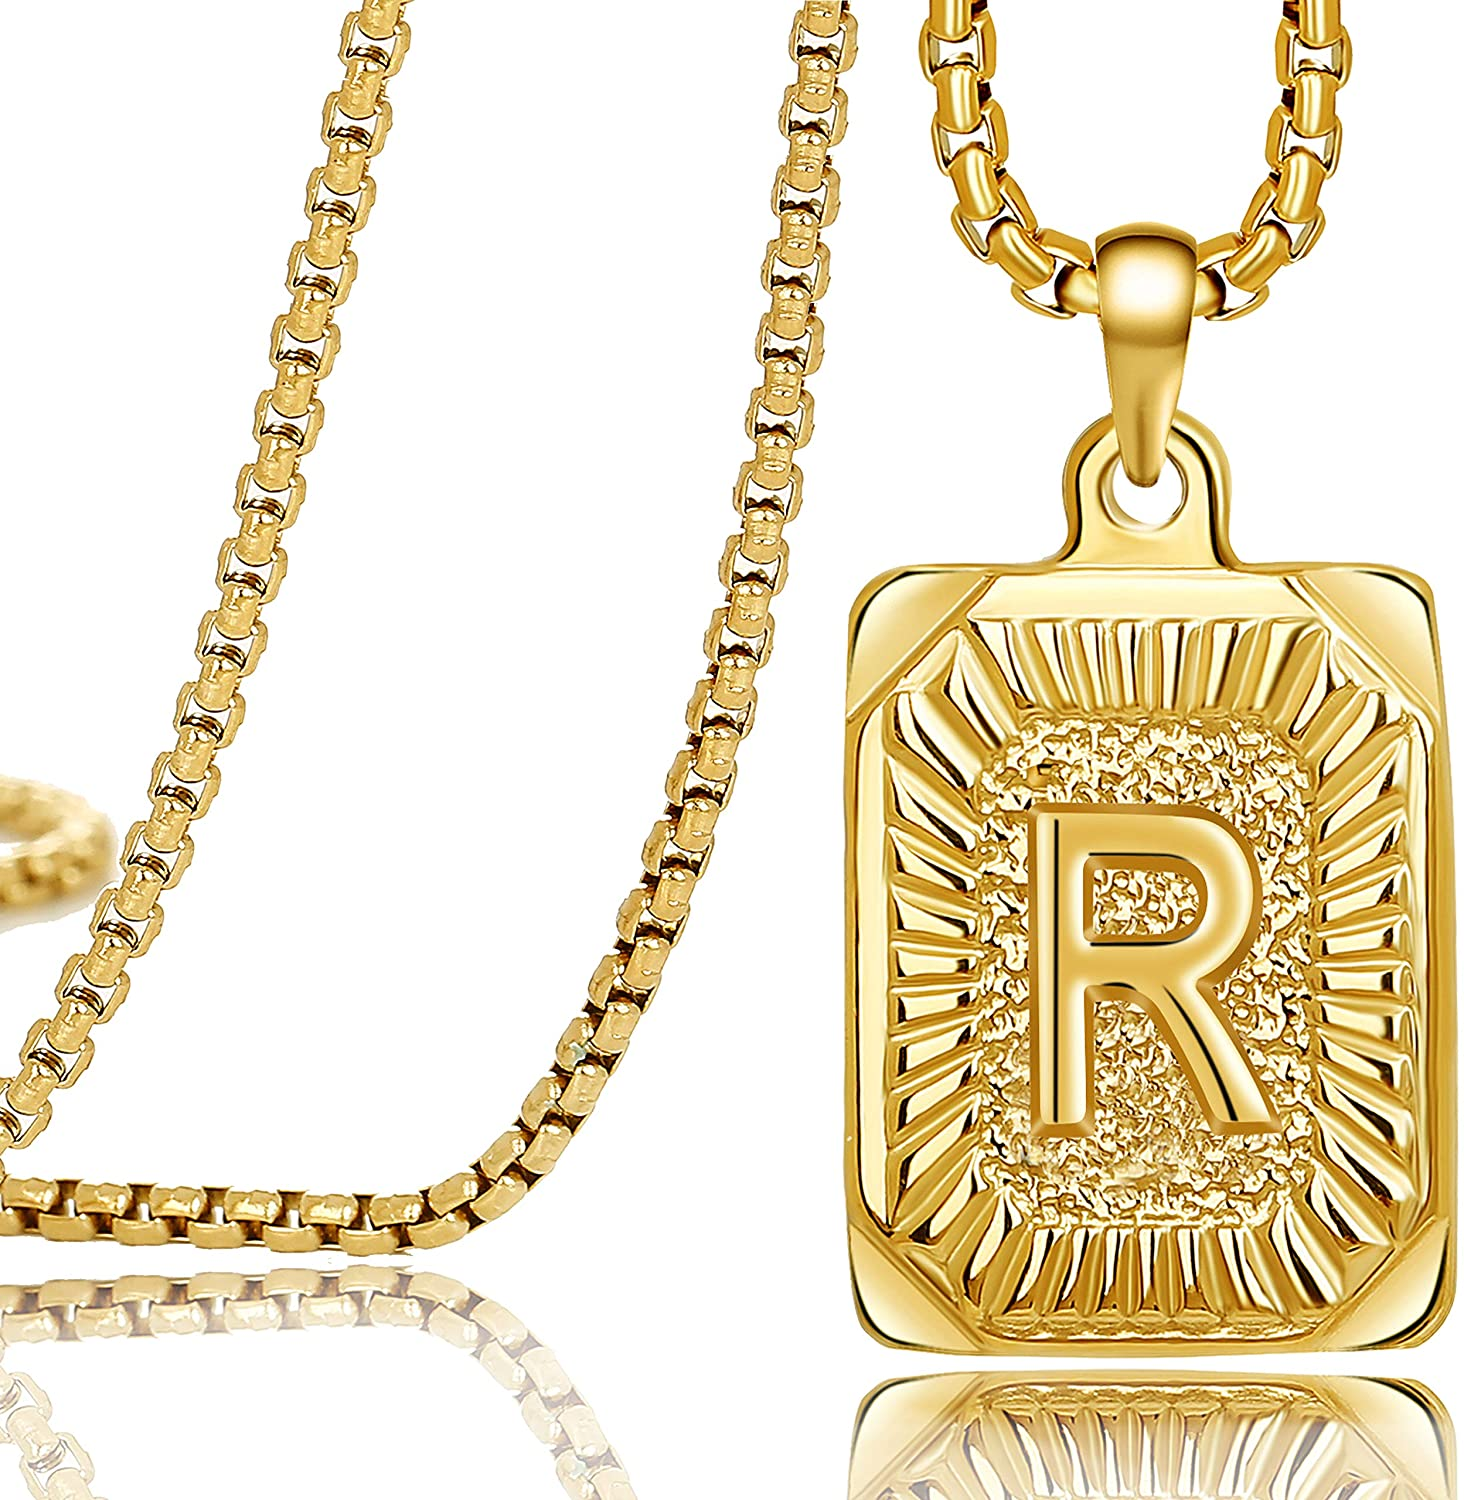 MEMGIFT 18K Real Yellow Gold Initial Letter Men Necklace Rectangle Capital Pendant Monogram A-Z Stainless Steel Box Chain 22inch Unique Trendy Fashion Handmade Fancy Personalized Women Jewelry